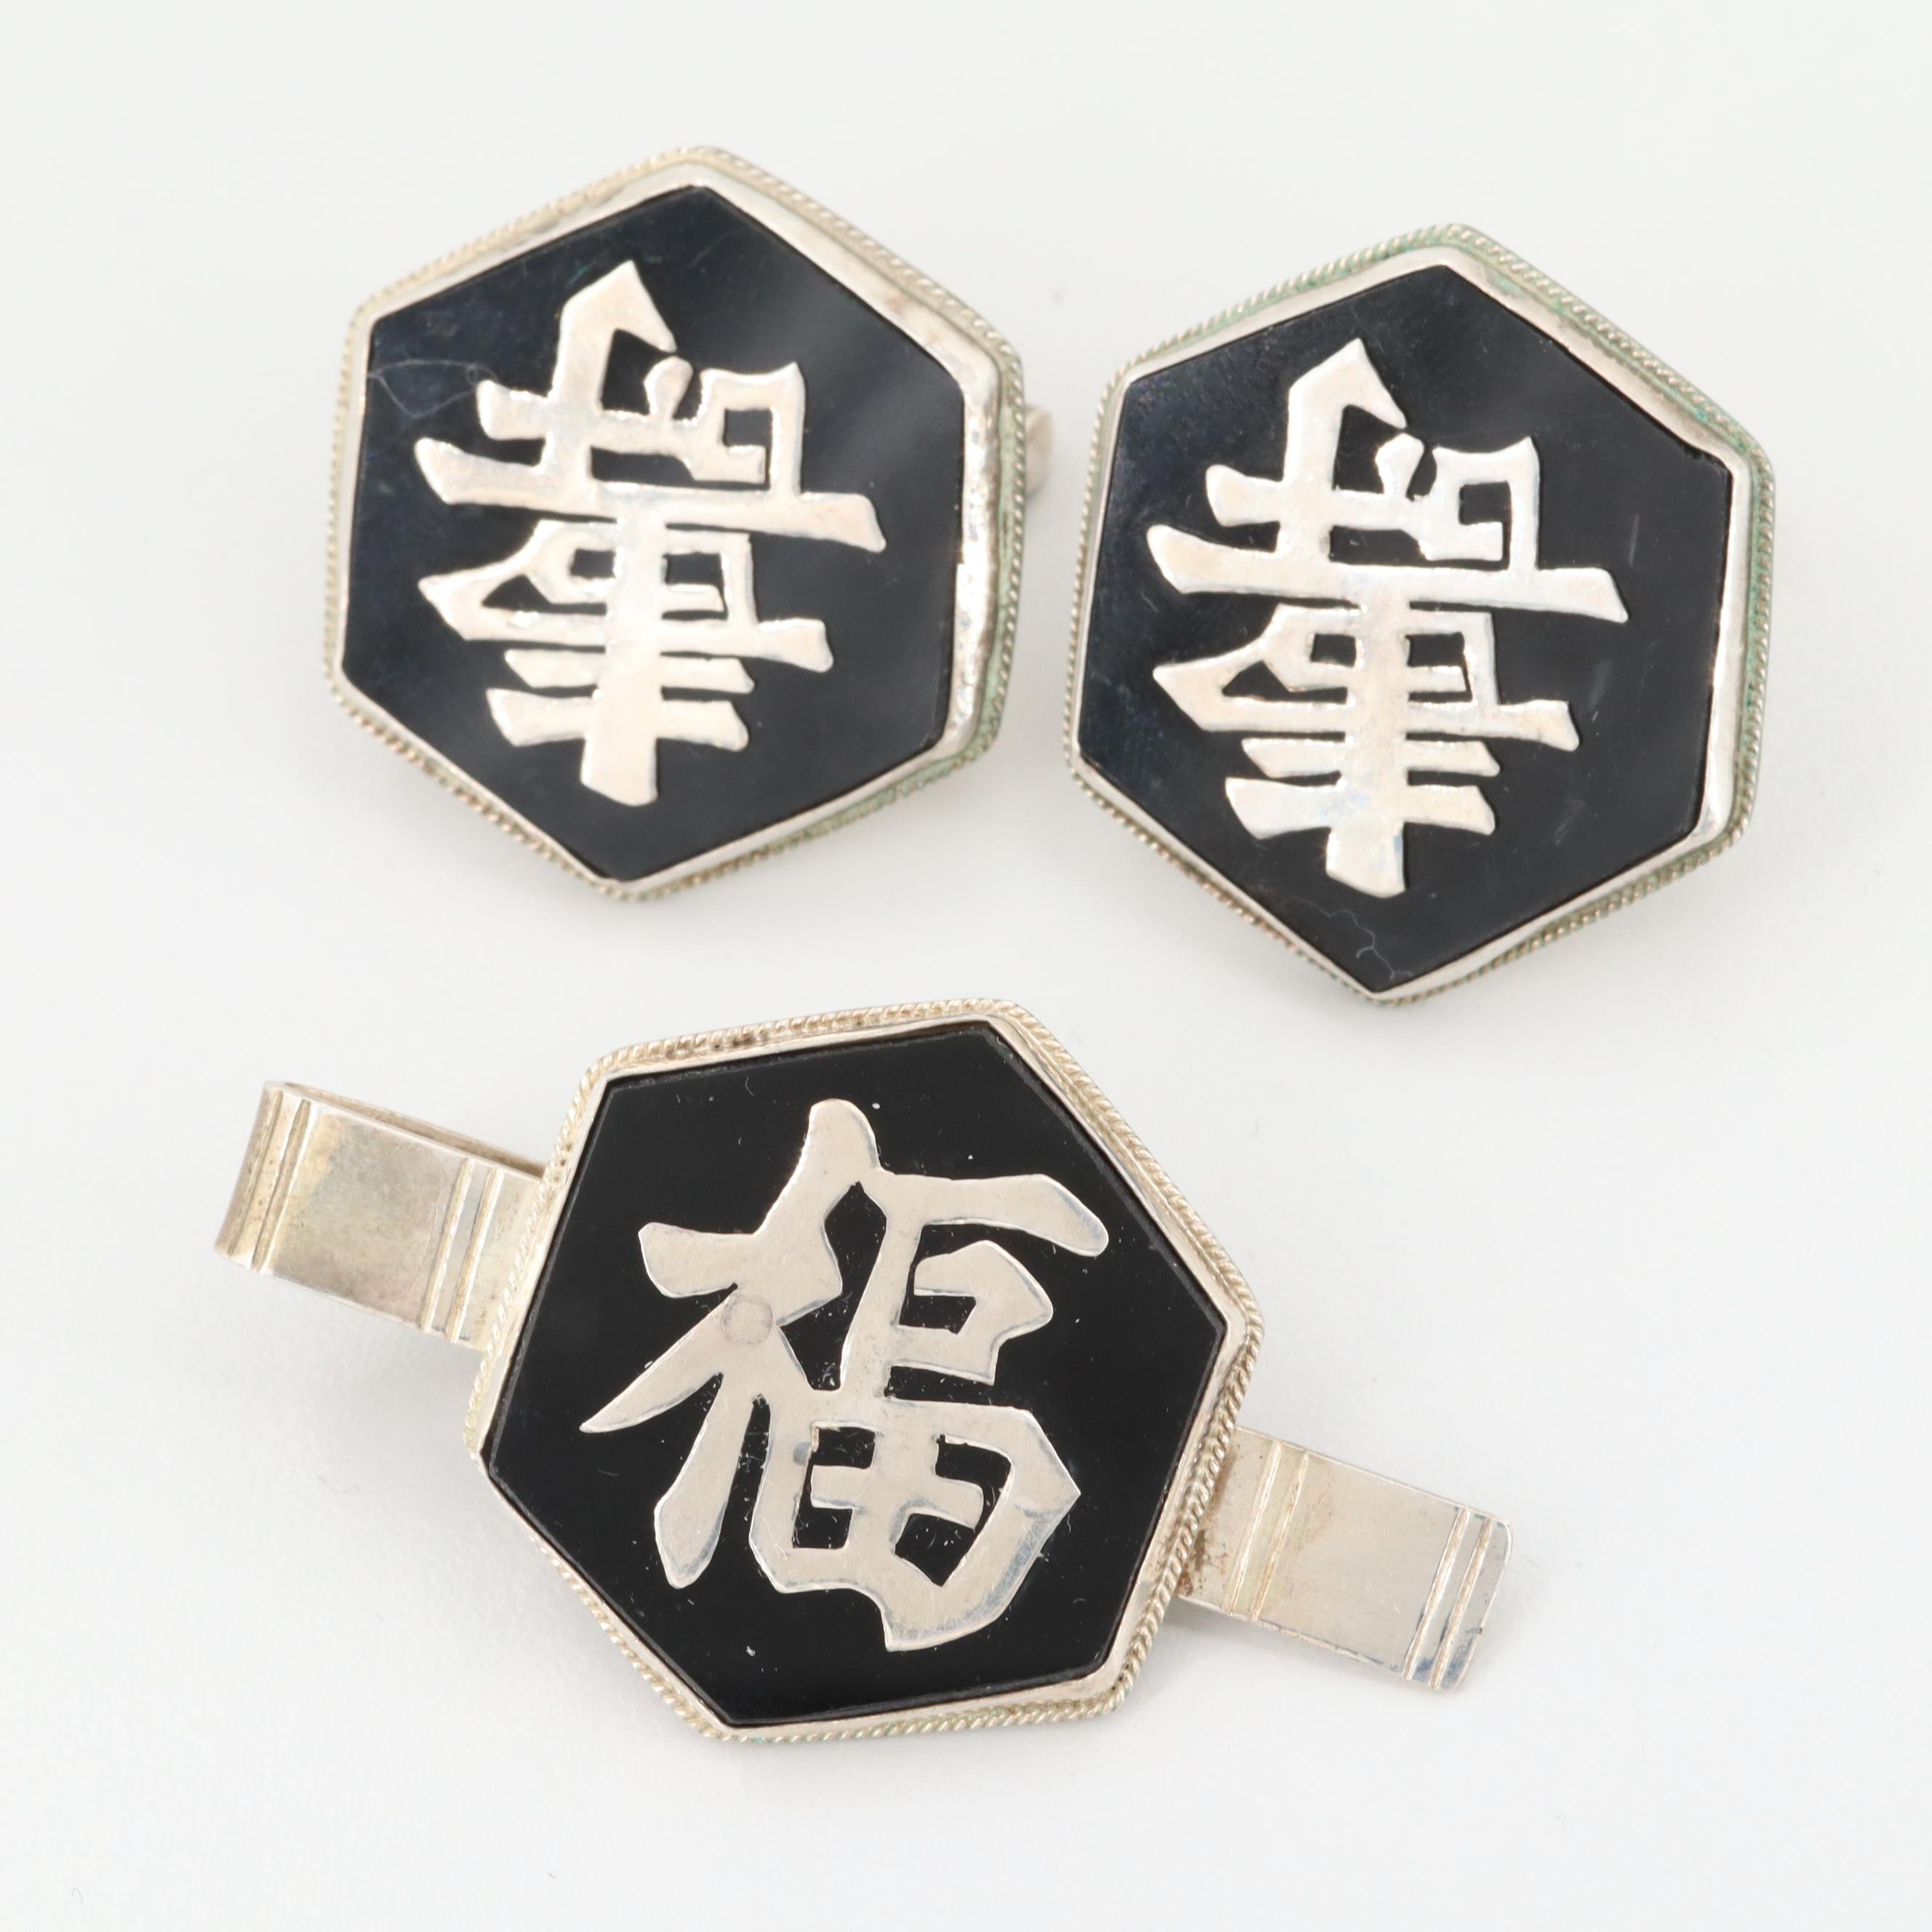 Circa 1950s Hong Kong Sterling Silver Good Luck Cufflinks and Tie Clip